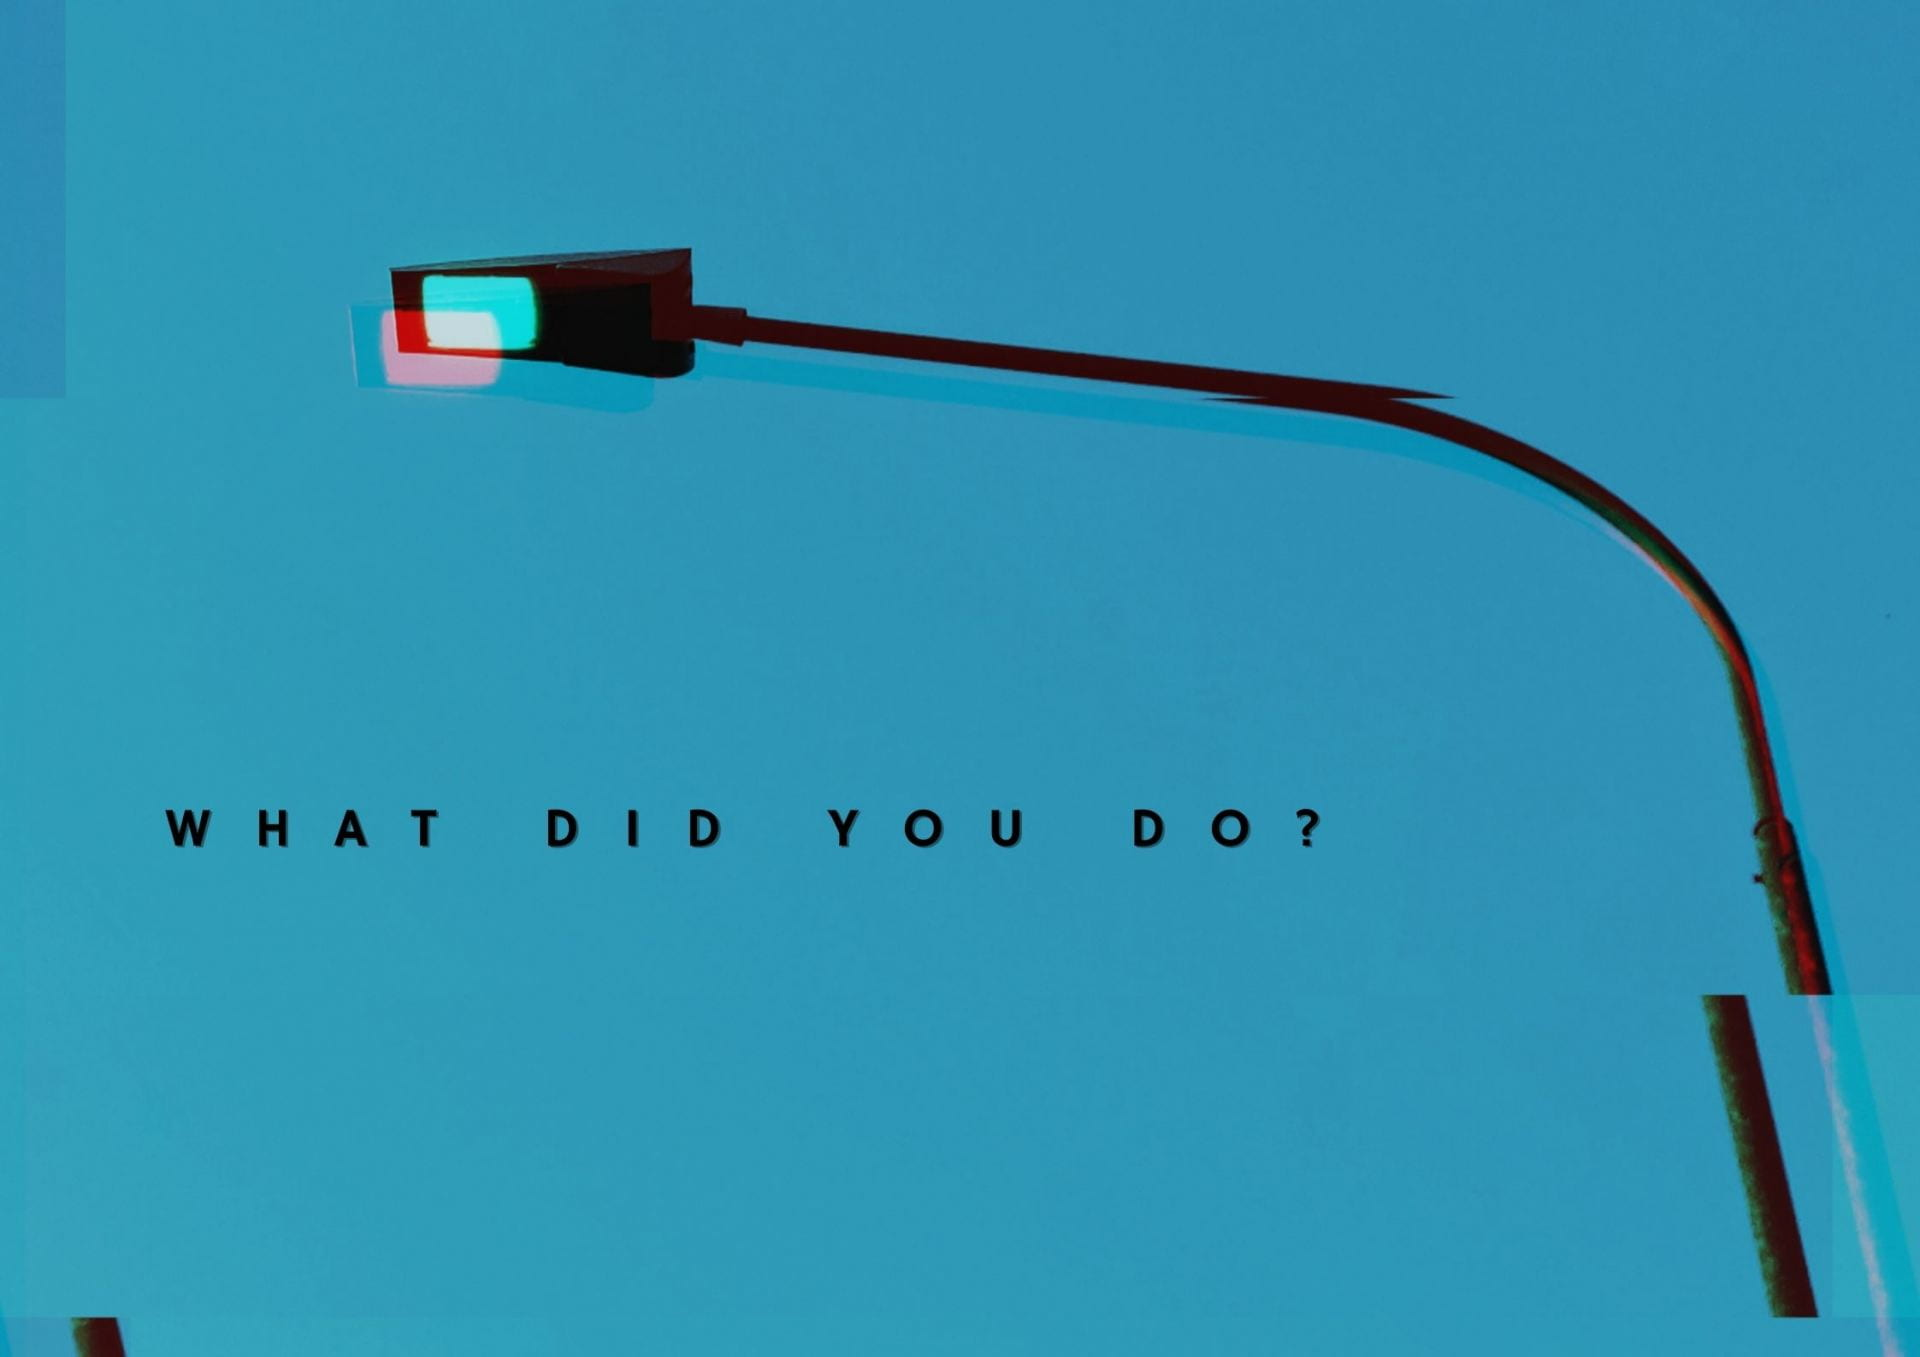 A lamppost against a blue background. The image has a 3D red and blue effect. Underneath the lamppost are the words 'what did you do?'